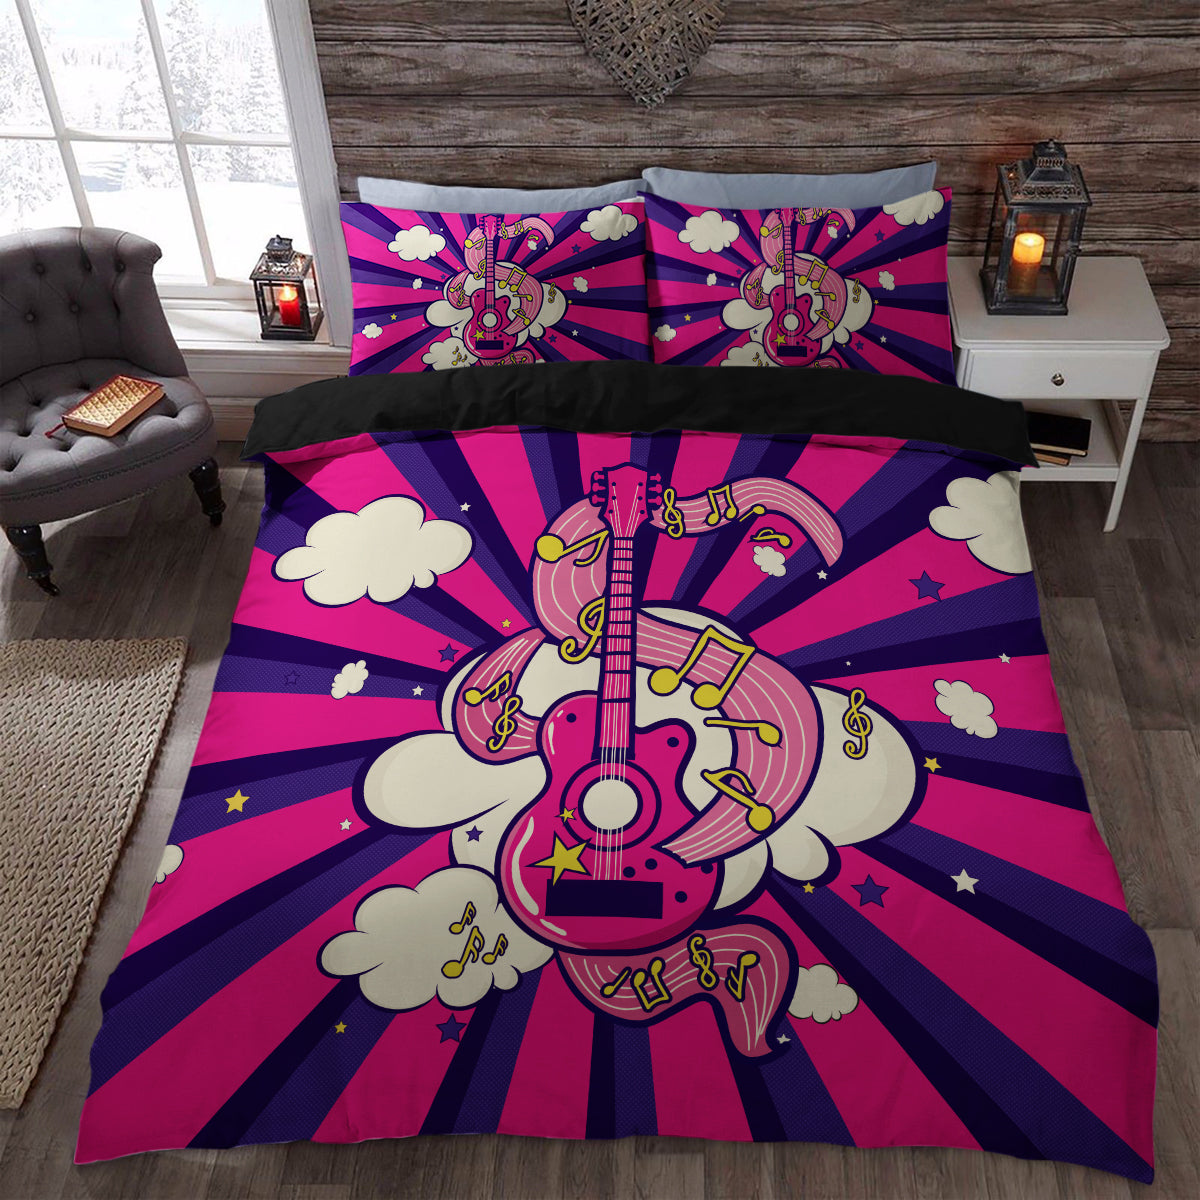 Cute Pink Guitar Bedding Set Duvet Cover Store For Sale   Perfect Gift For  Guitar Lovers